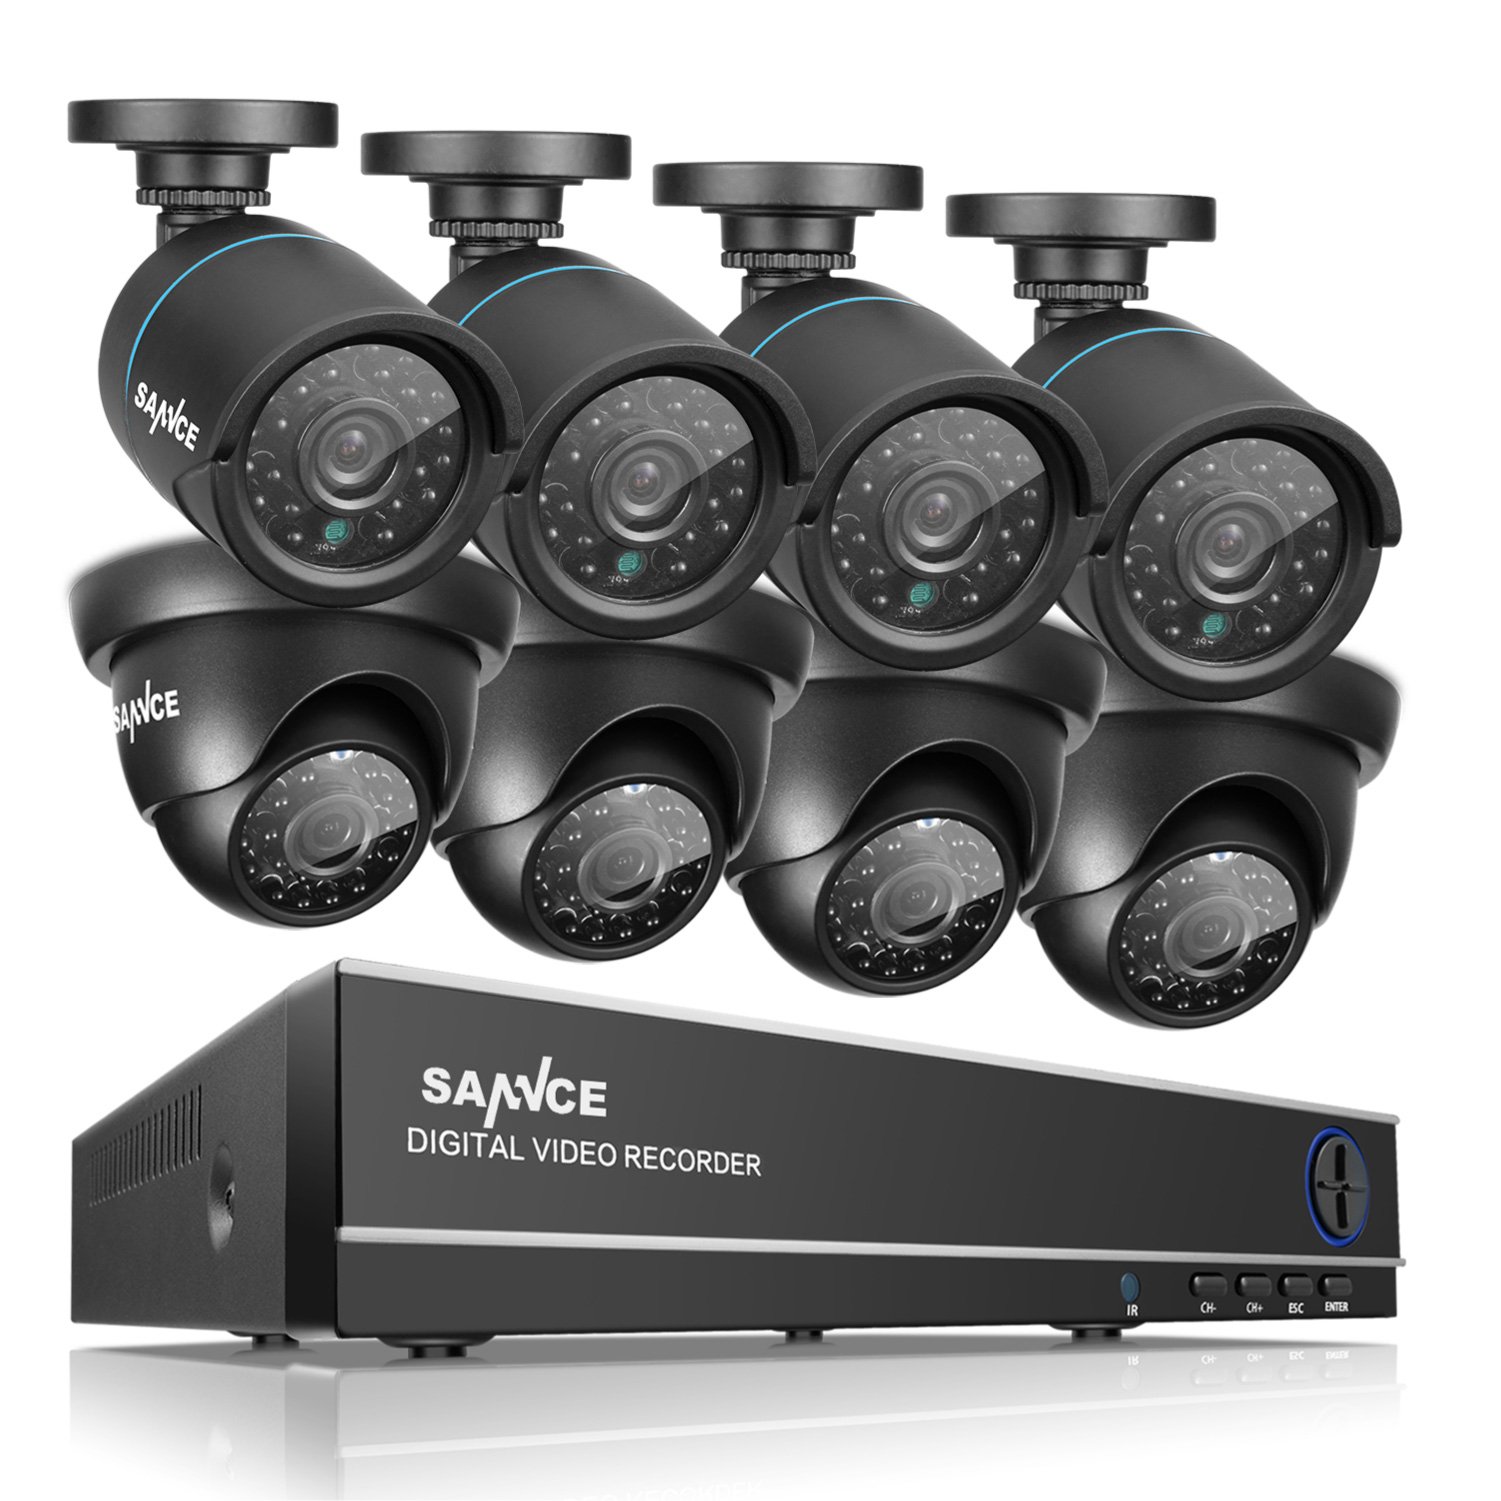 SANNCE 8CH Full 1080N Security Camera System CCTV DVR and (8) 720P Night Vision Surveillance Cameras, IP66 Weatherproof , P2P Technology/E-Cloud Service, QR Code Scan Remote Access -No HDD